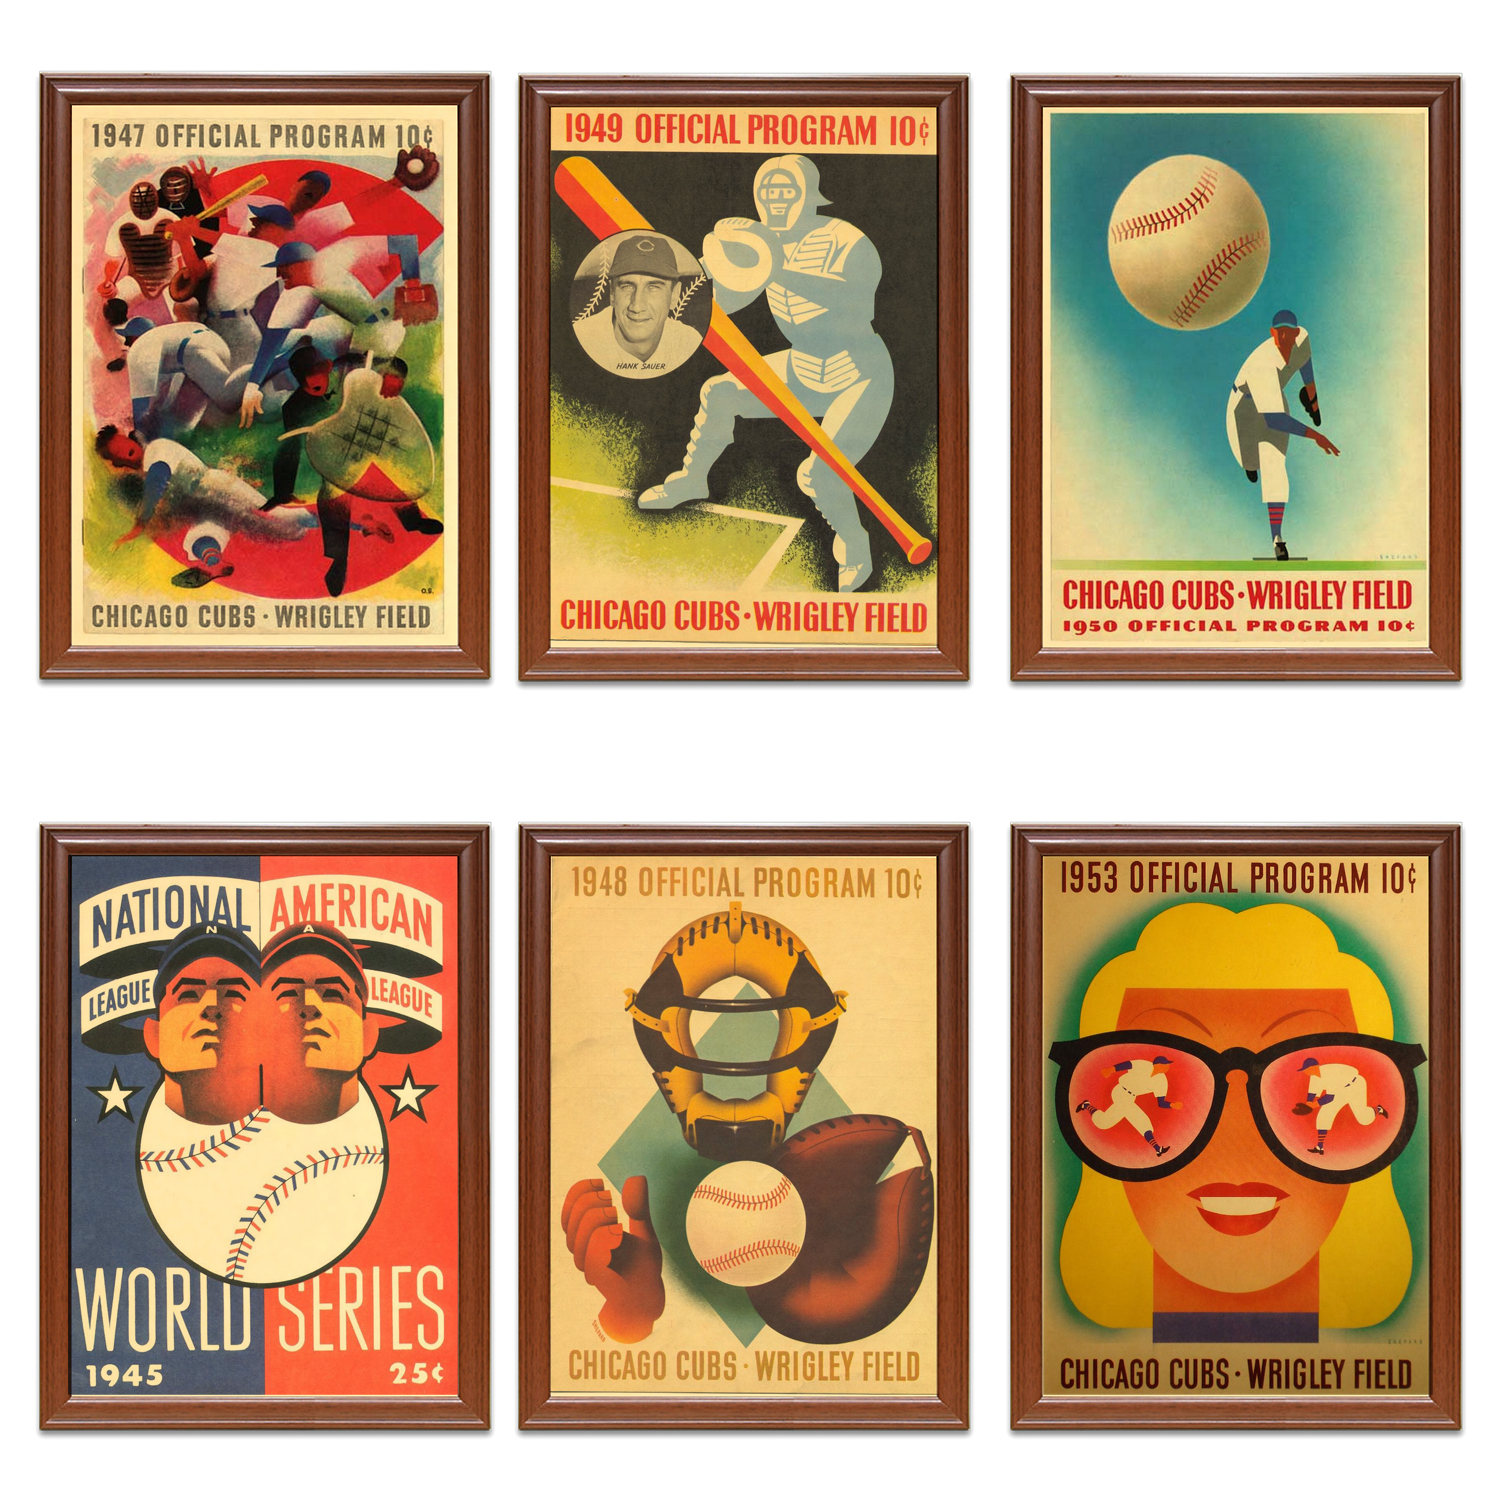 Chicago Cubs Baseball A4 Picture Art Poster Retro Vintage Style Print